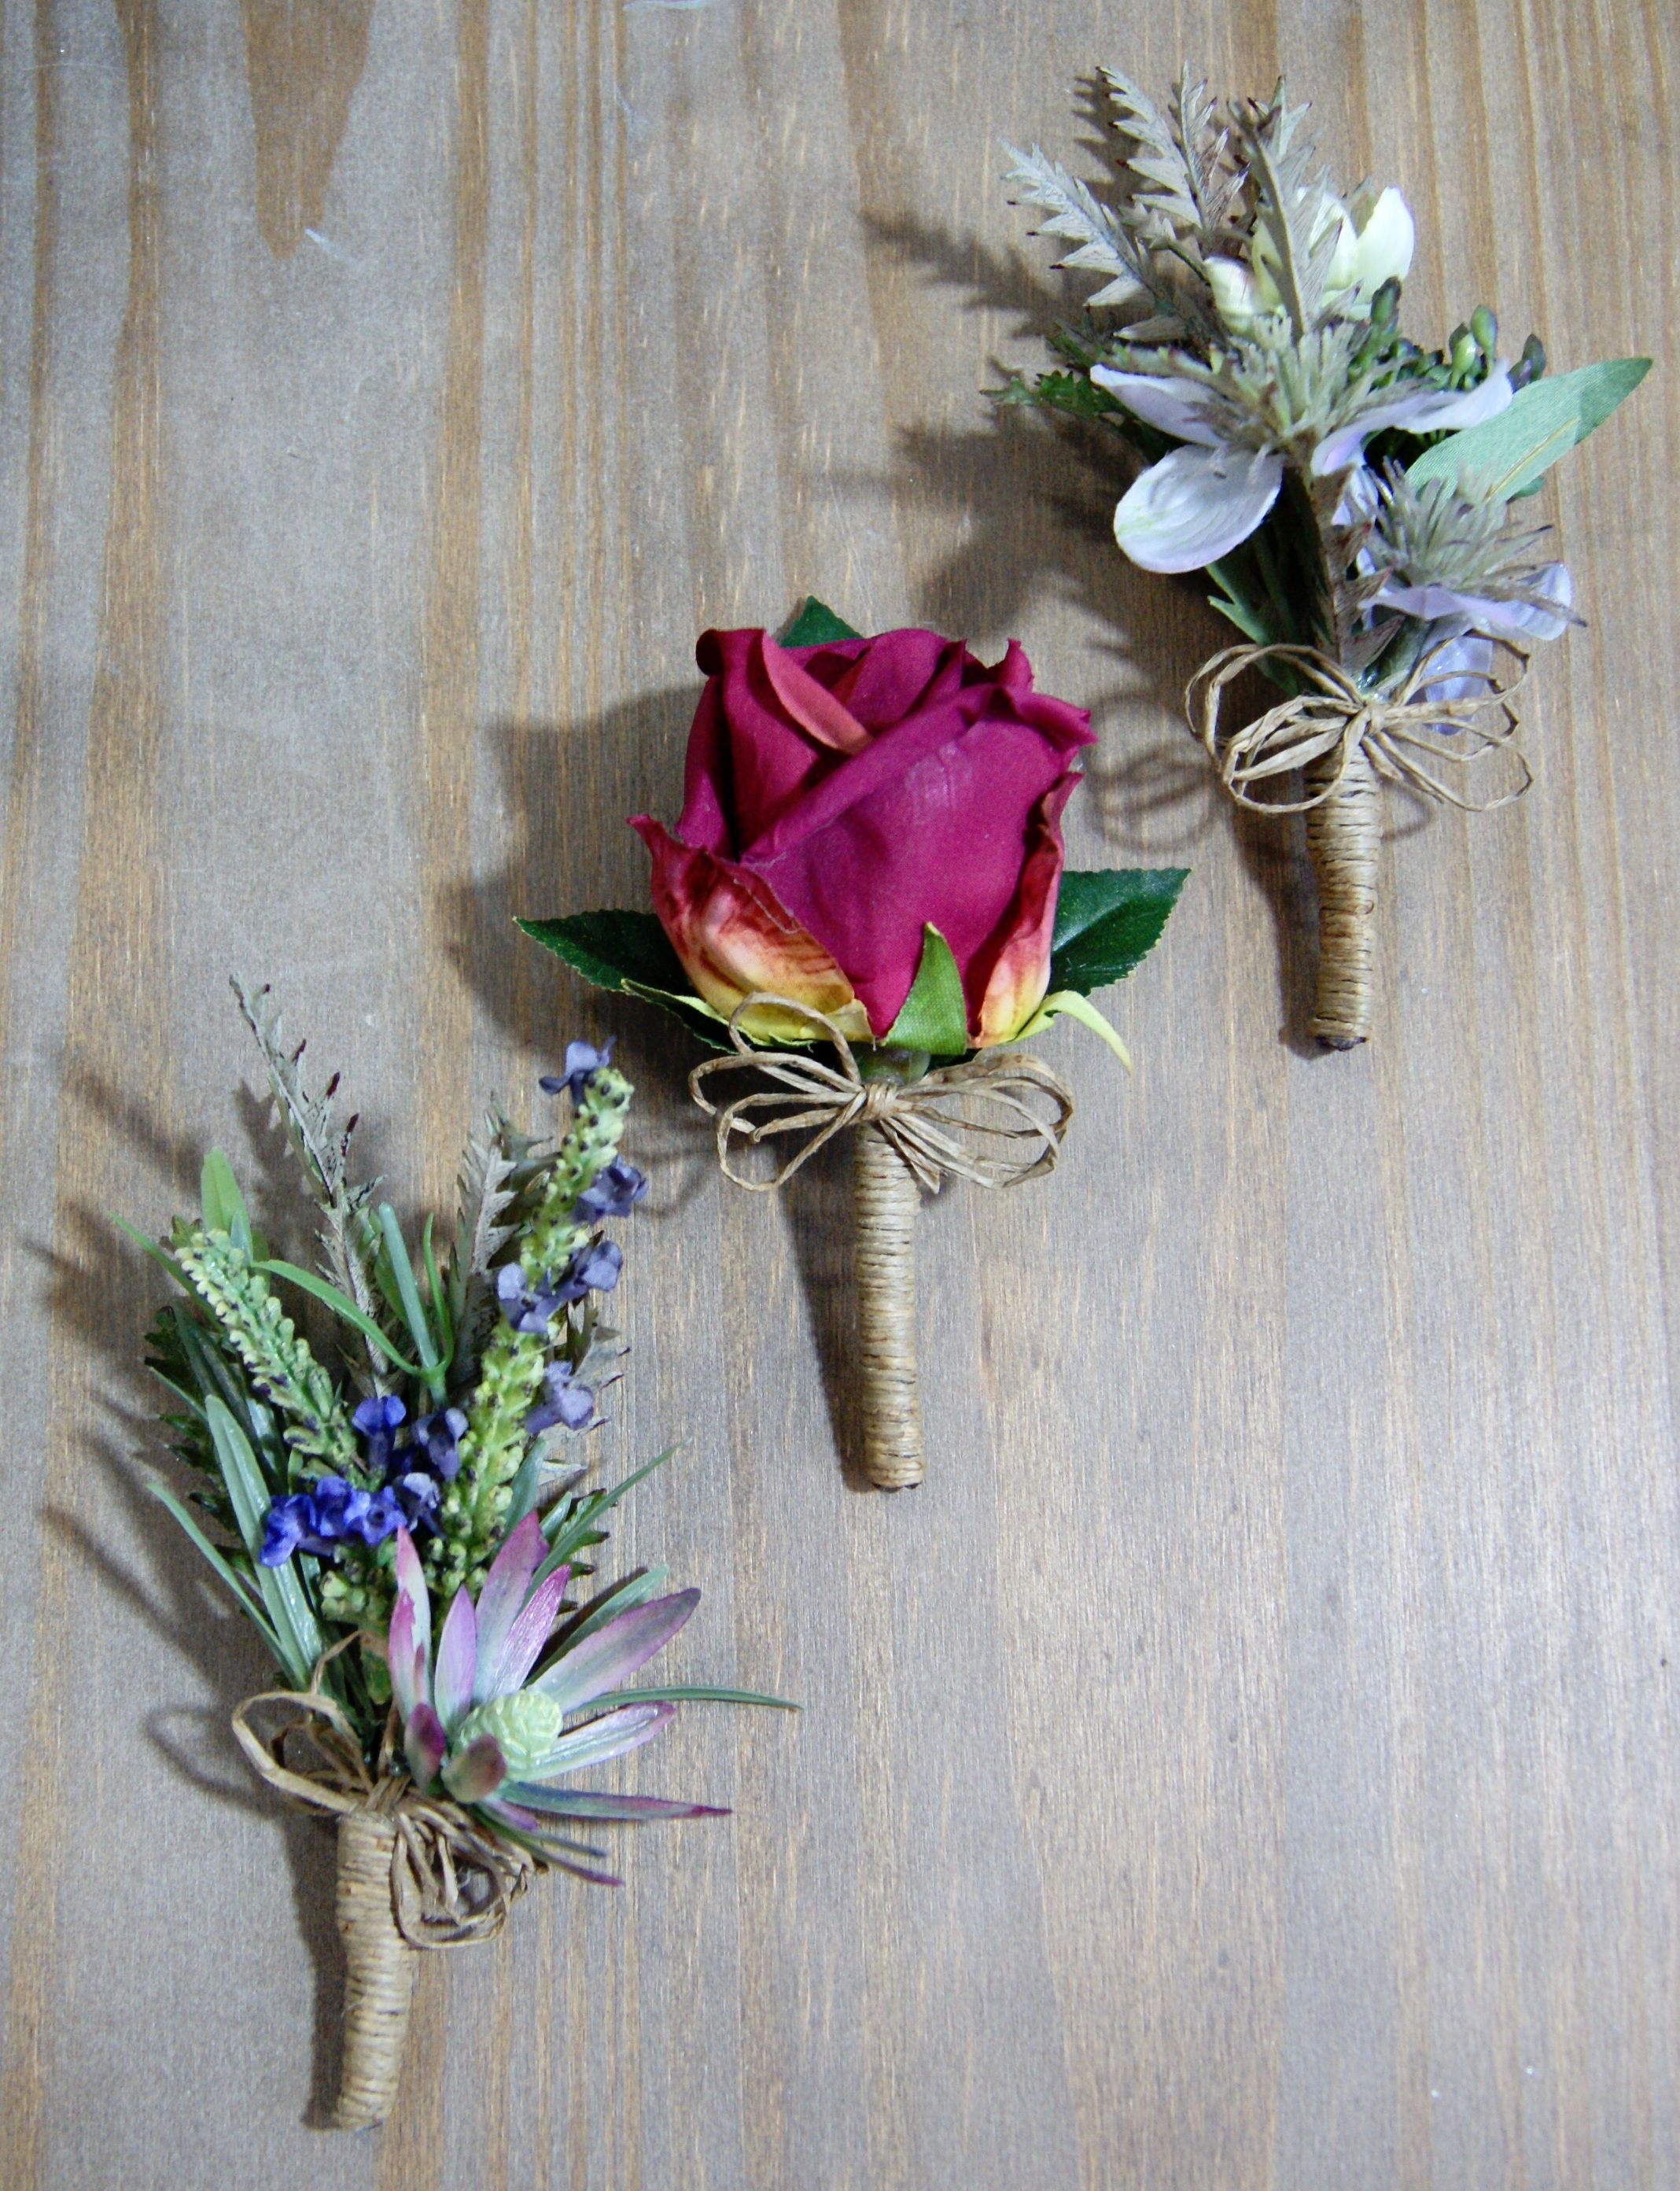 Wedding Buttonhole Designs For A Rustic Theme With Natural Twine And